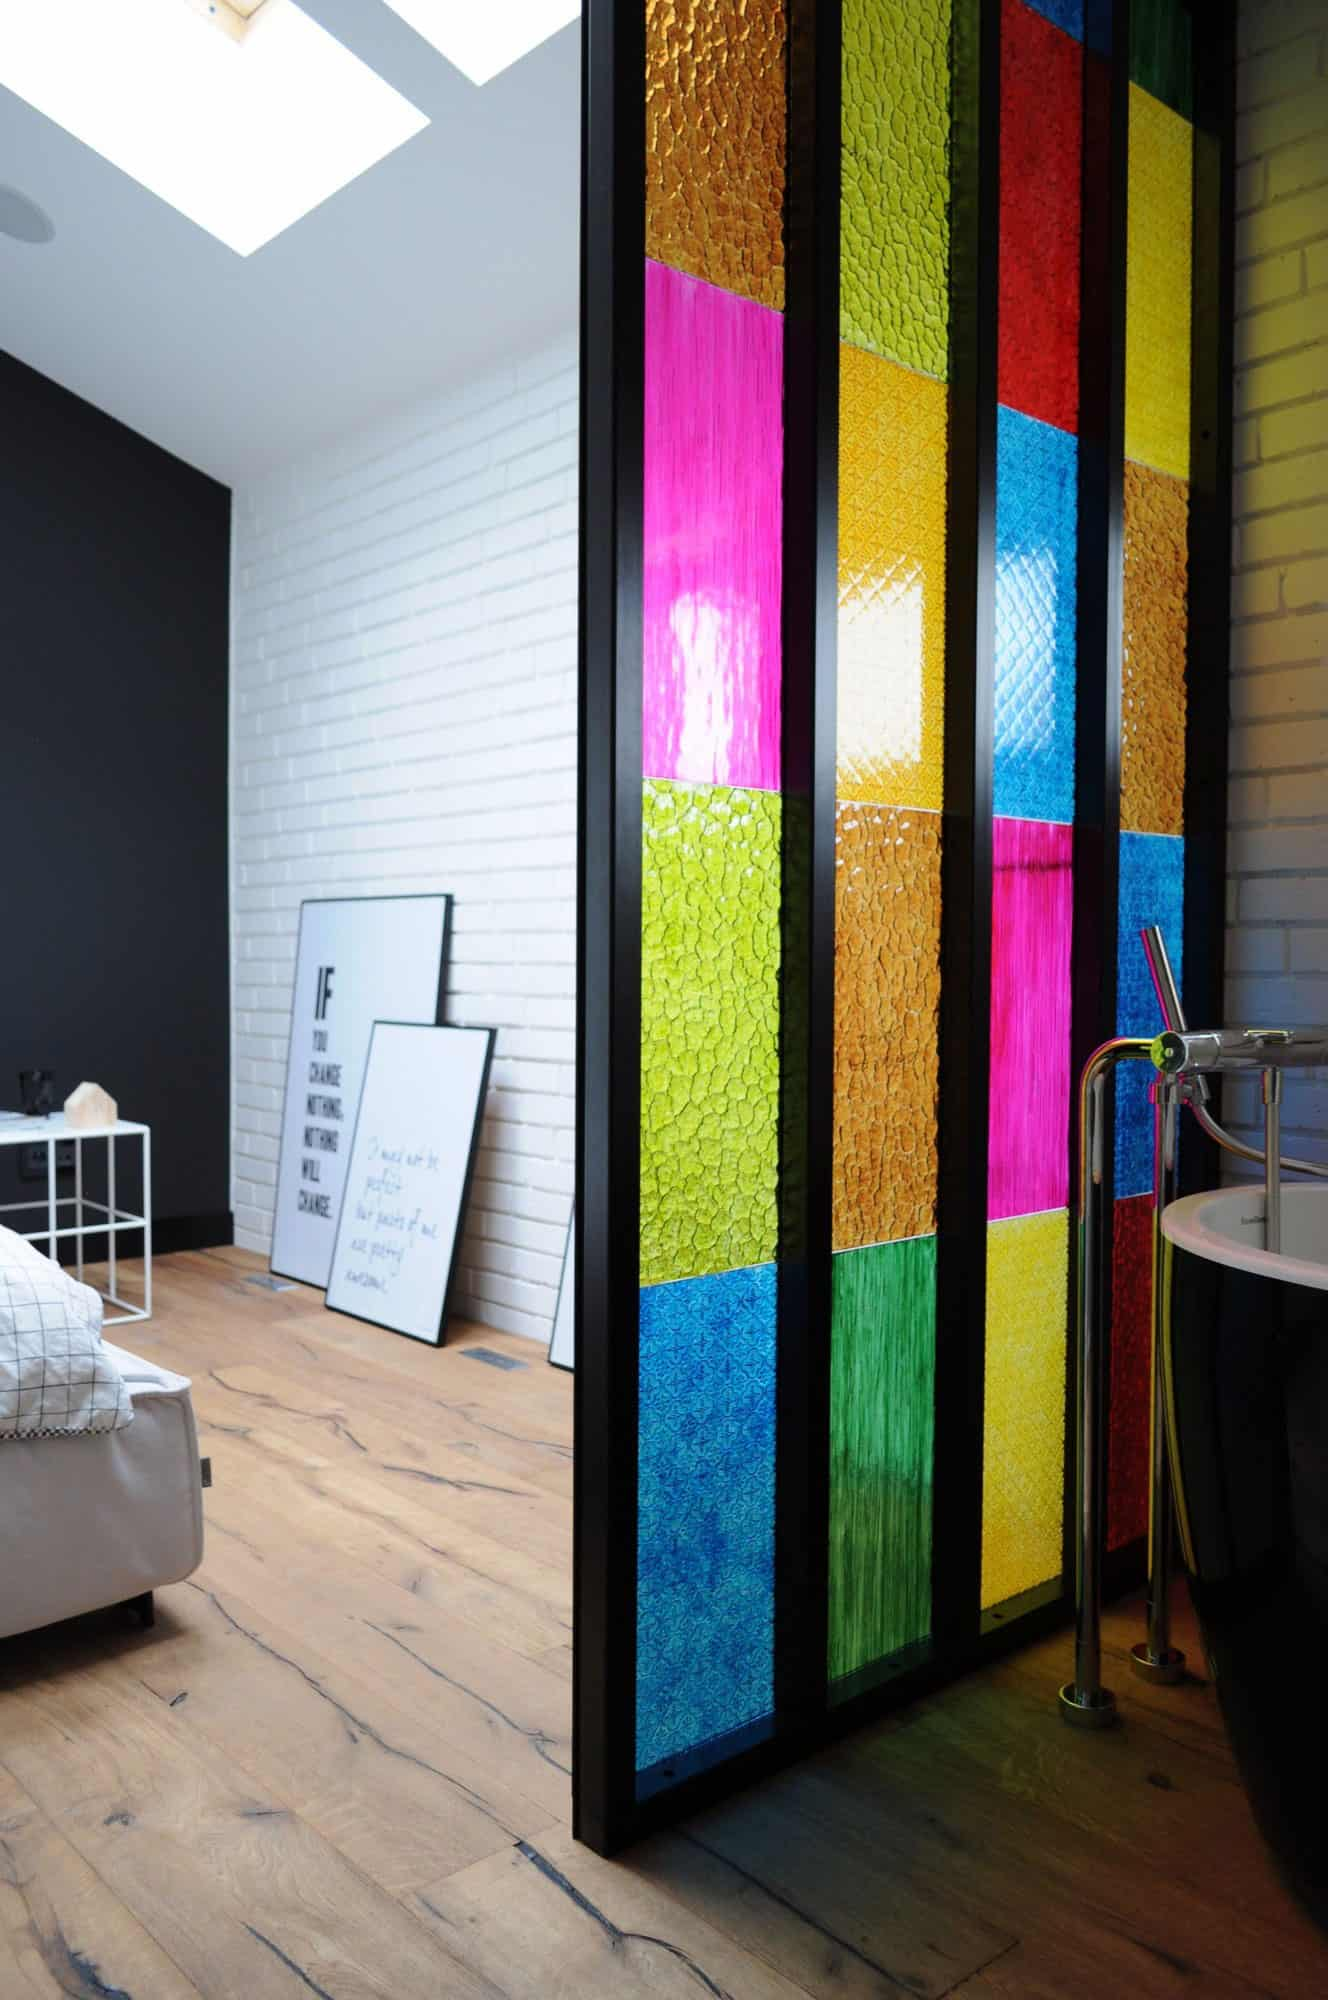 Stupendous Bedroom Bathroom Partition In Colored Plastic Panels Diy Idea Download Free Architecture Designs Jebrpmadebymaigaardcom